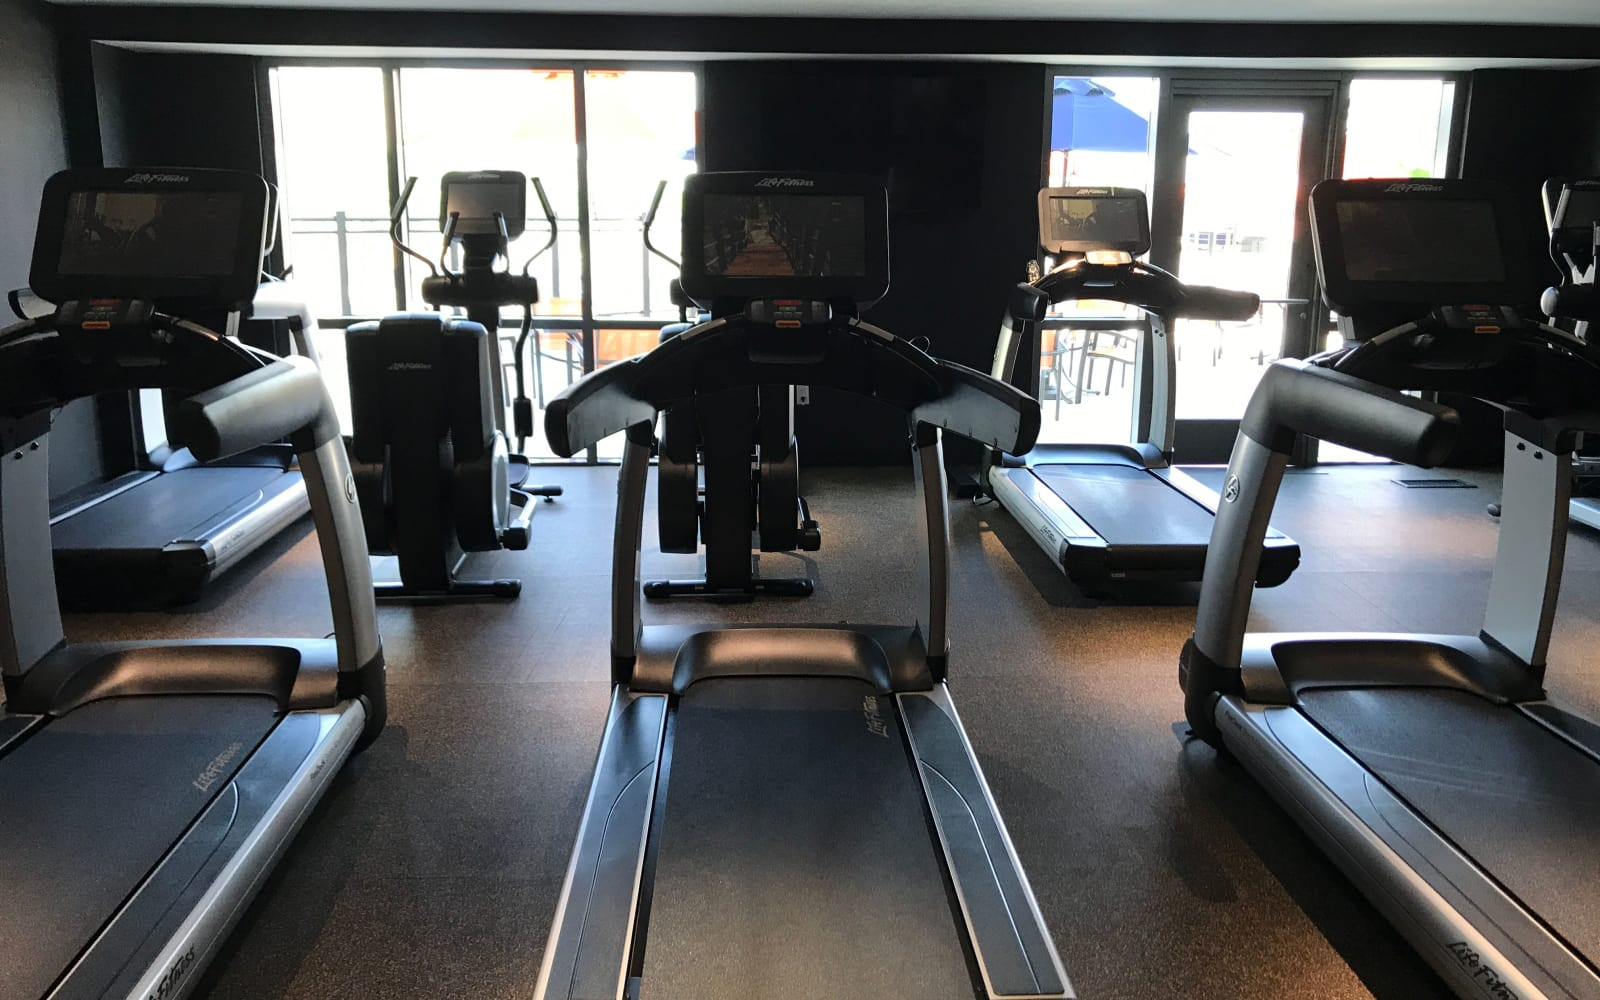 Gym at The Centre in Cliffside Park, NJ